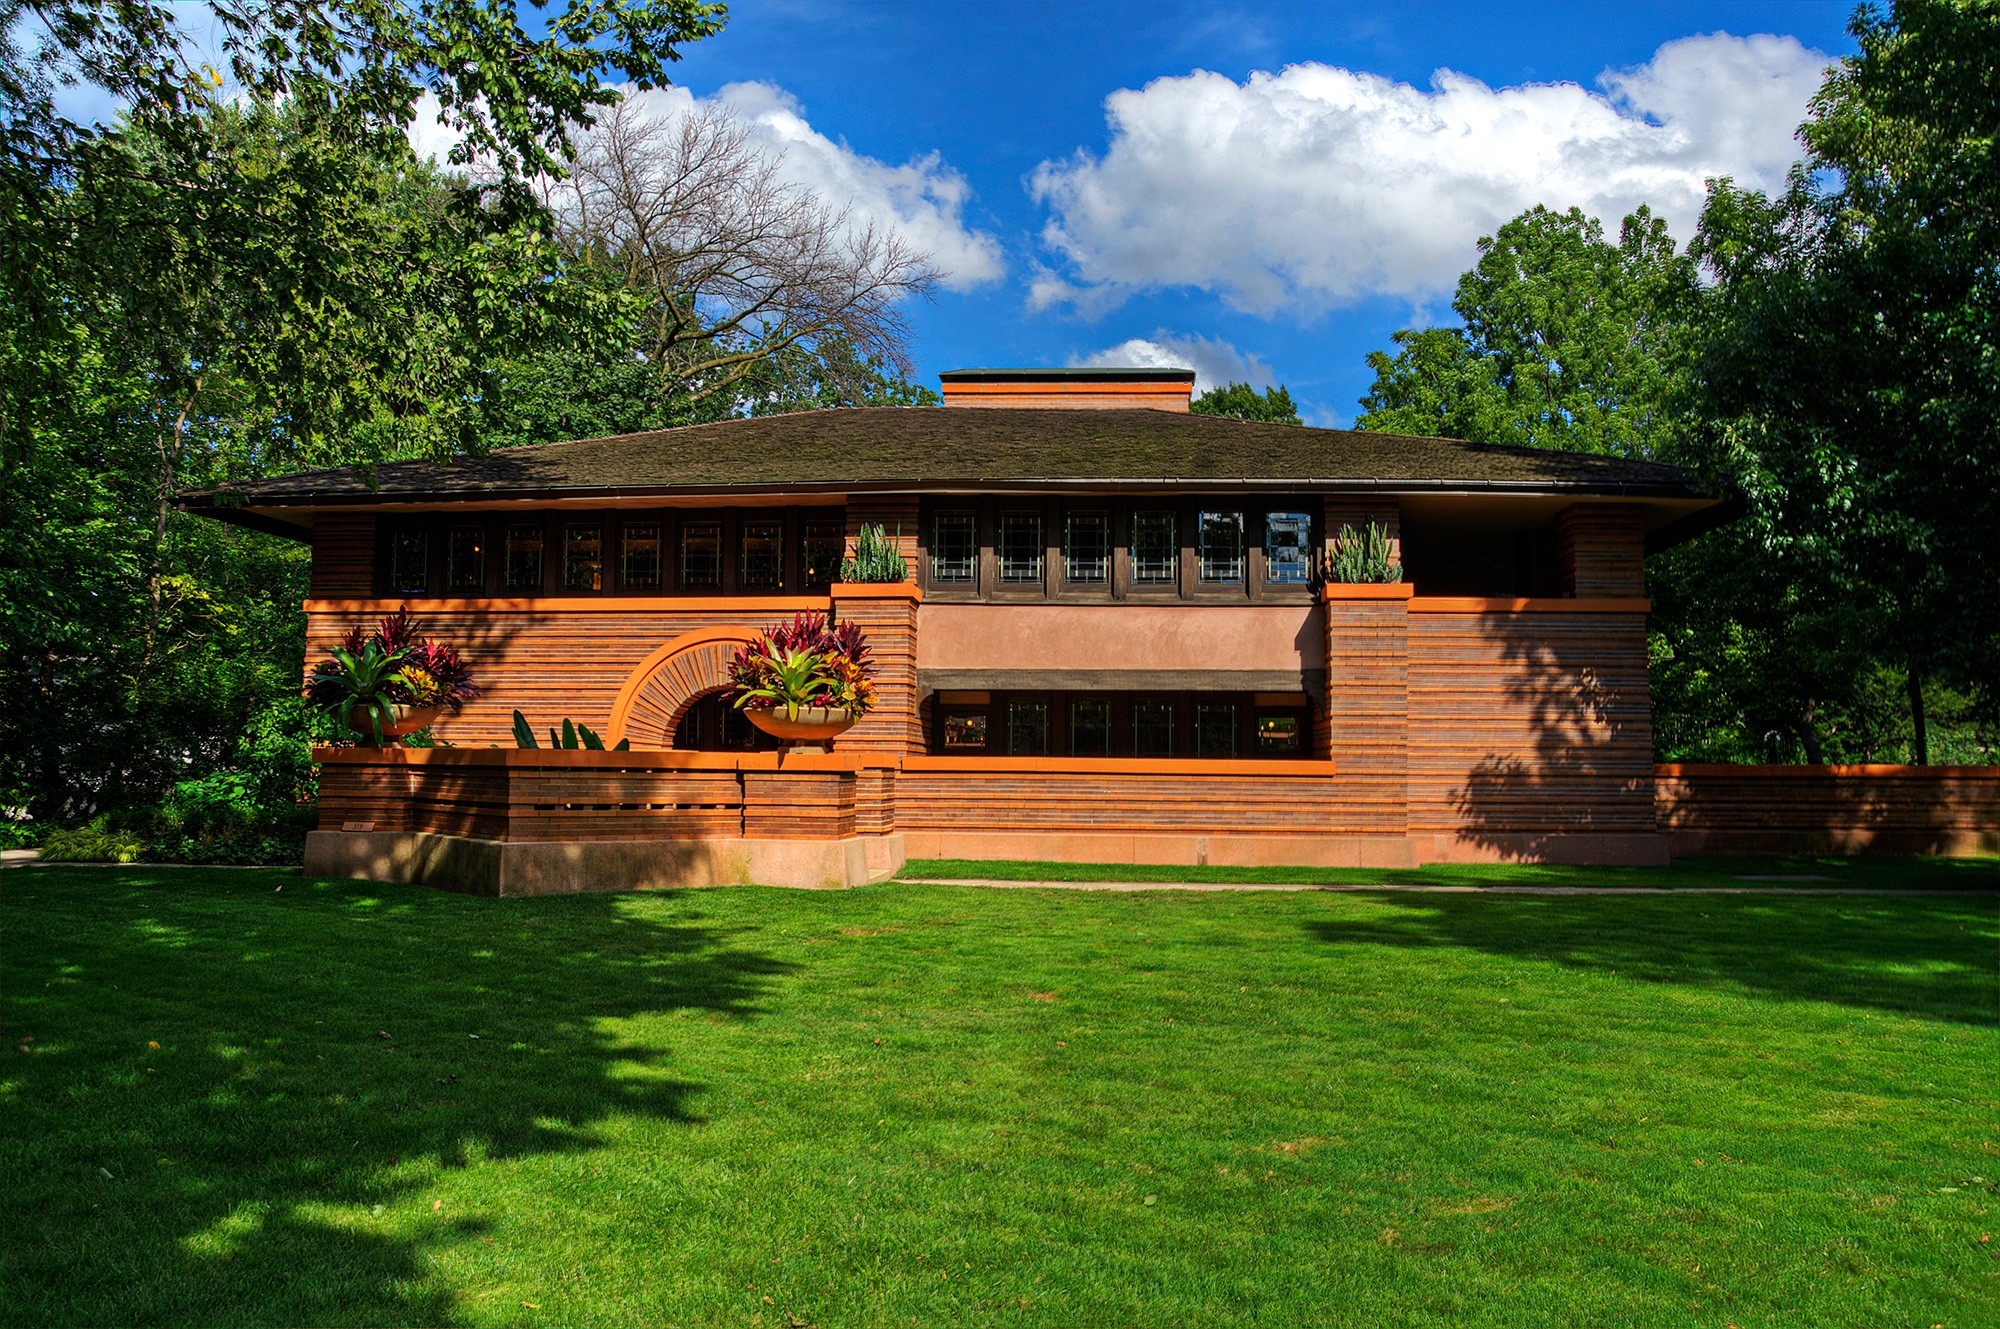 Frank lloyd wright in oak park tours chicago - Frank lloyd wright architecture ...